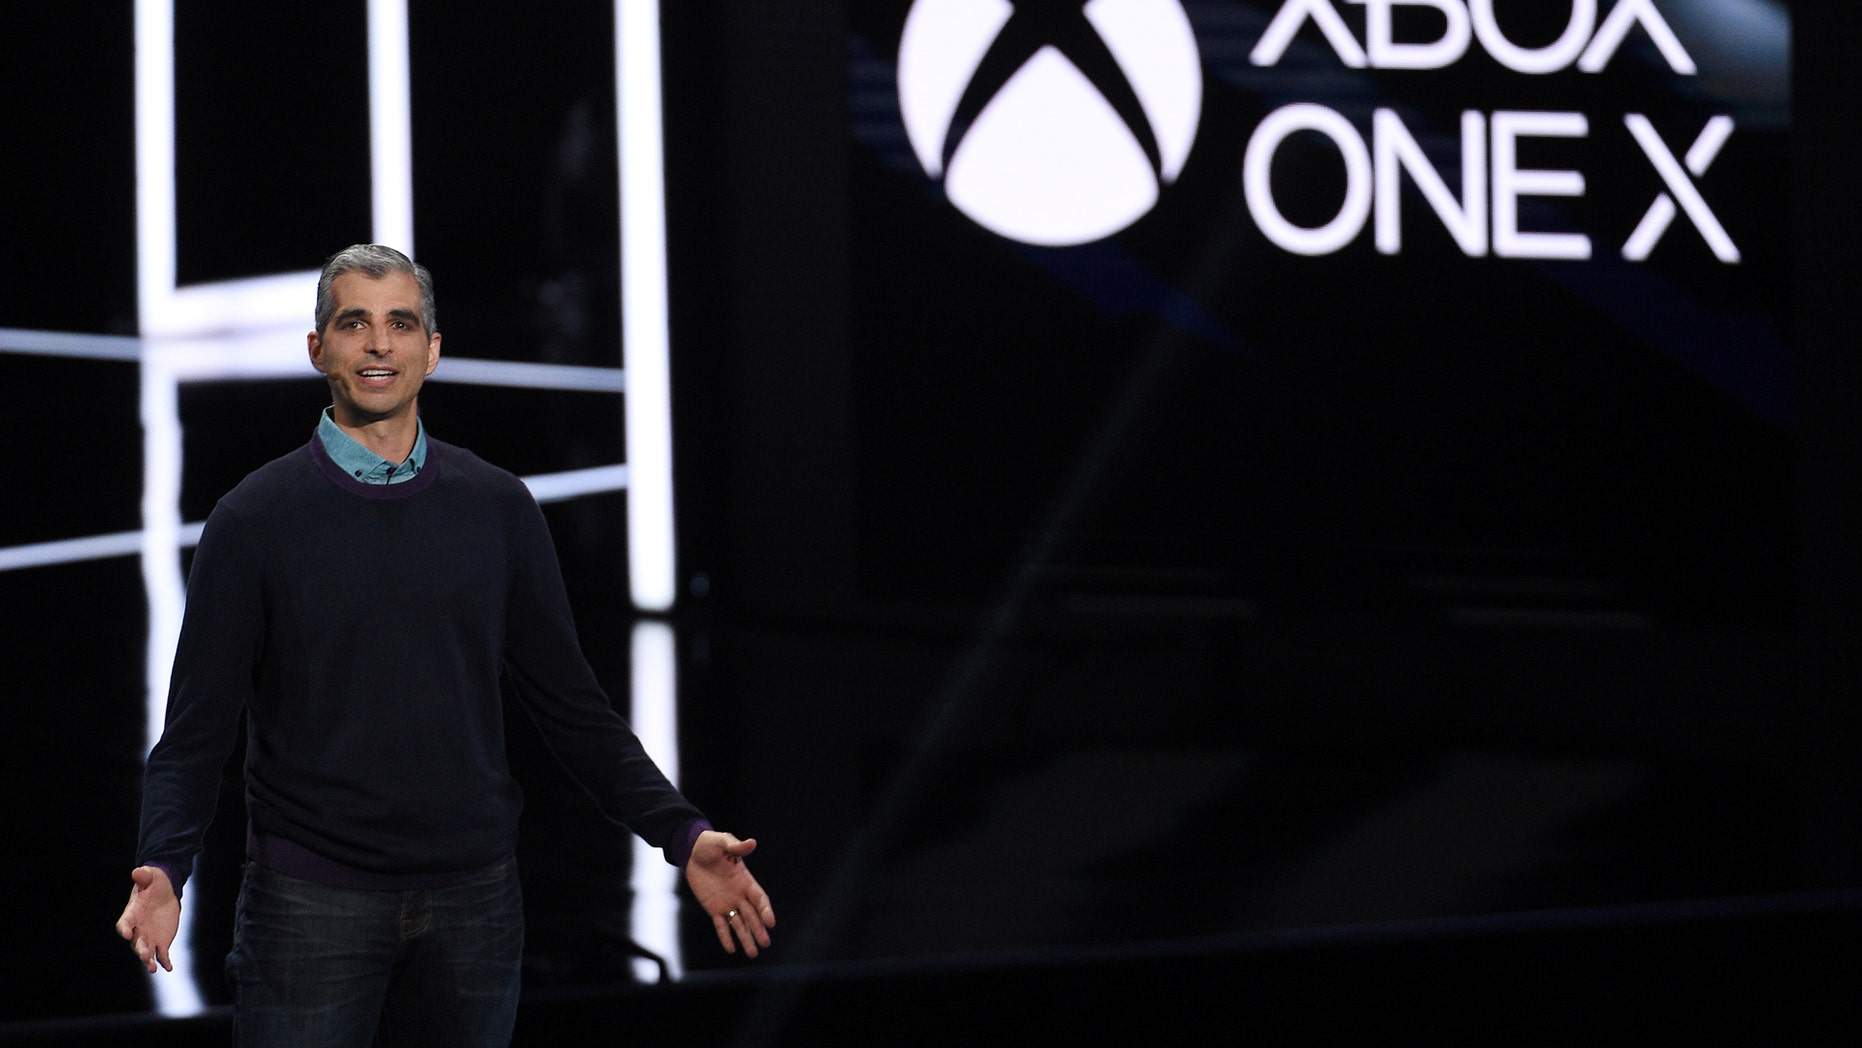 Kareem Choudhry, Xbox Vice President, introduces the Xbox One X gaming console during the Xbox E3 2017 media briefing in Los Angeles, California, U.S., June 11, 2017. (REUTERS/Kevork Djansezian)